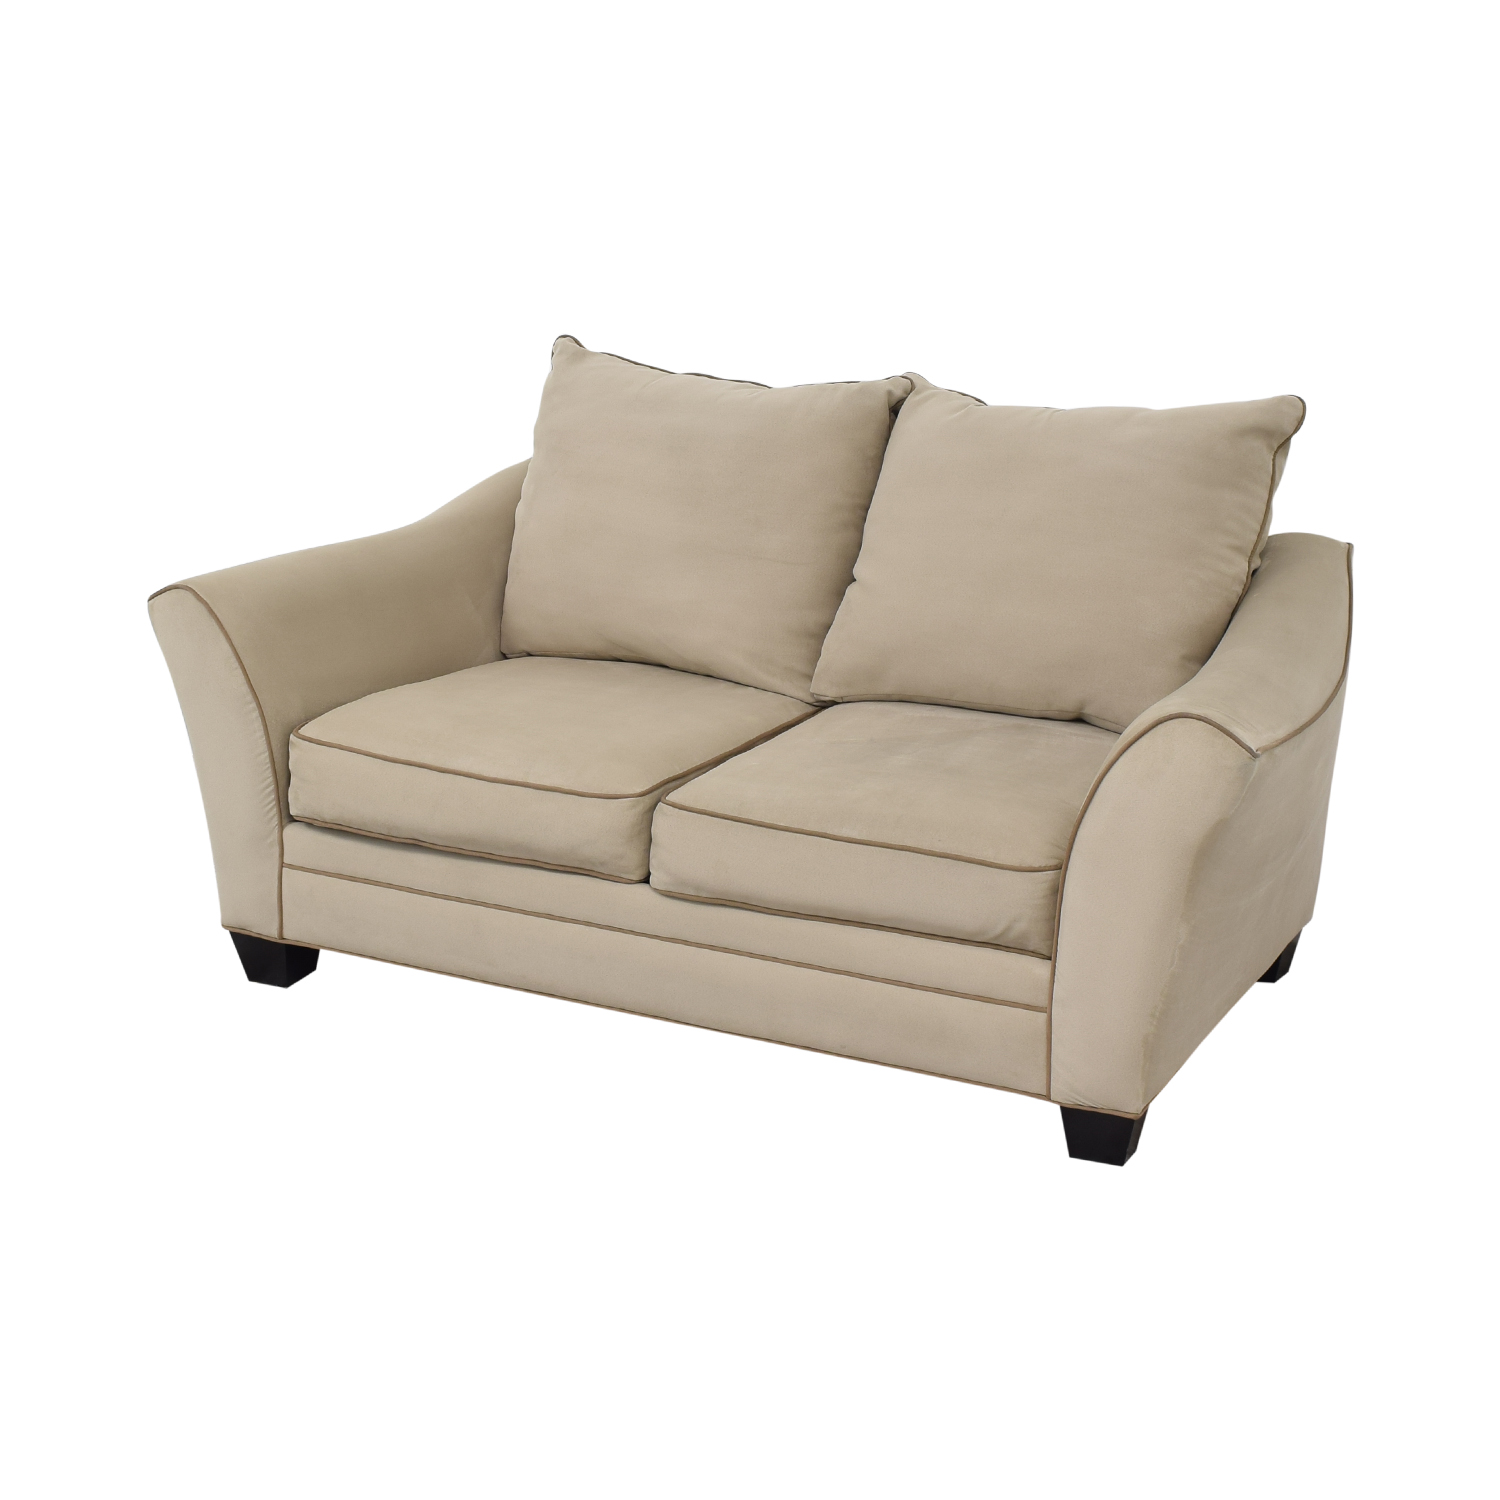 Raymour & Flanigan Raymour & Flanigan Foresthill Loveseat for sale